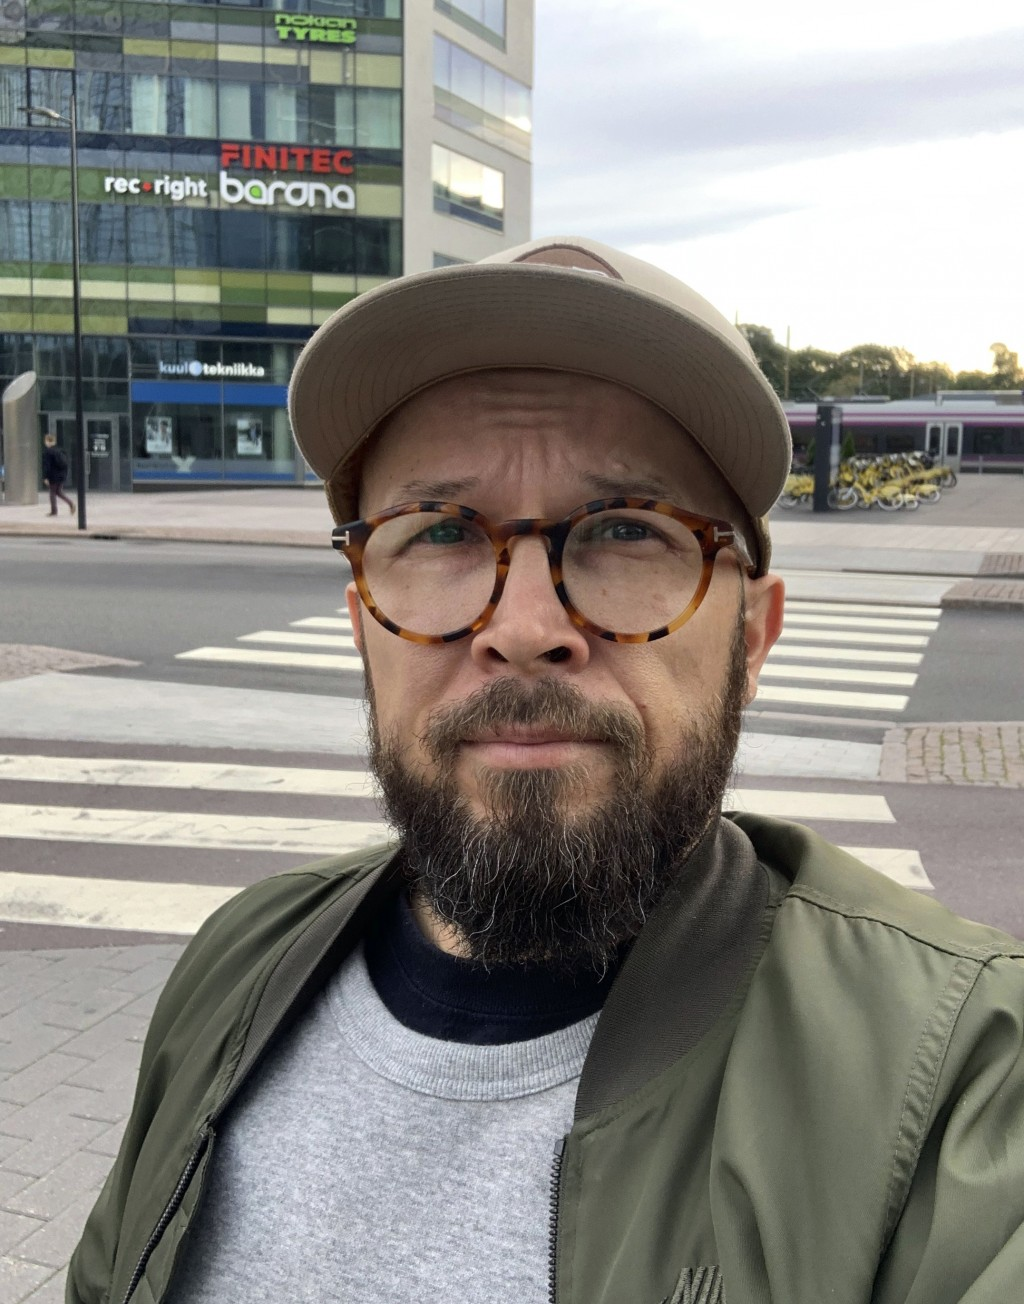 William Oesch poses for a selfie photo on Sept. 21, 2020 in Helsinki. With no end in sight to the global pandemic, more countries and states are turni...